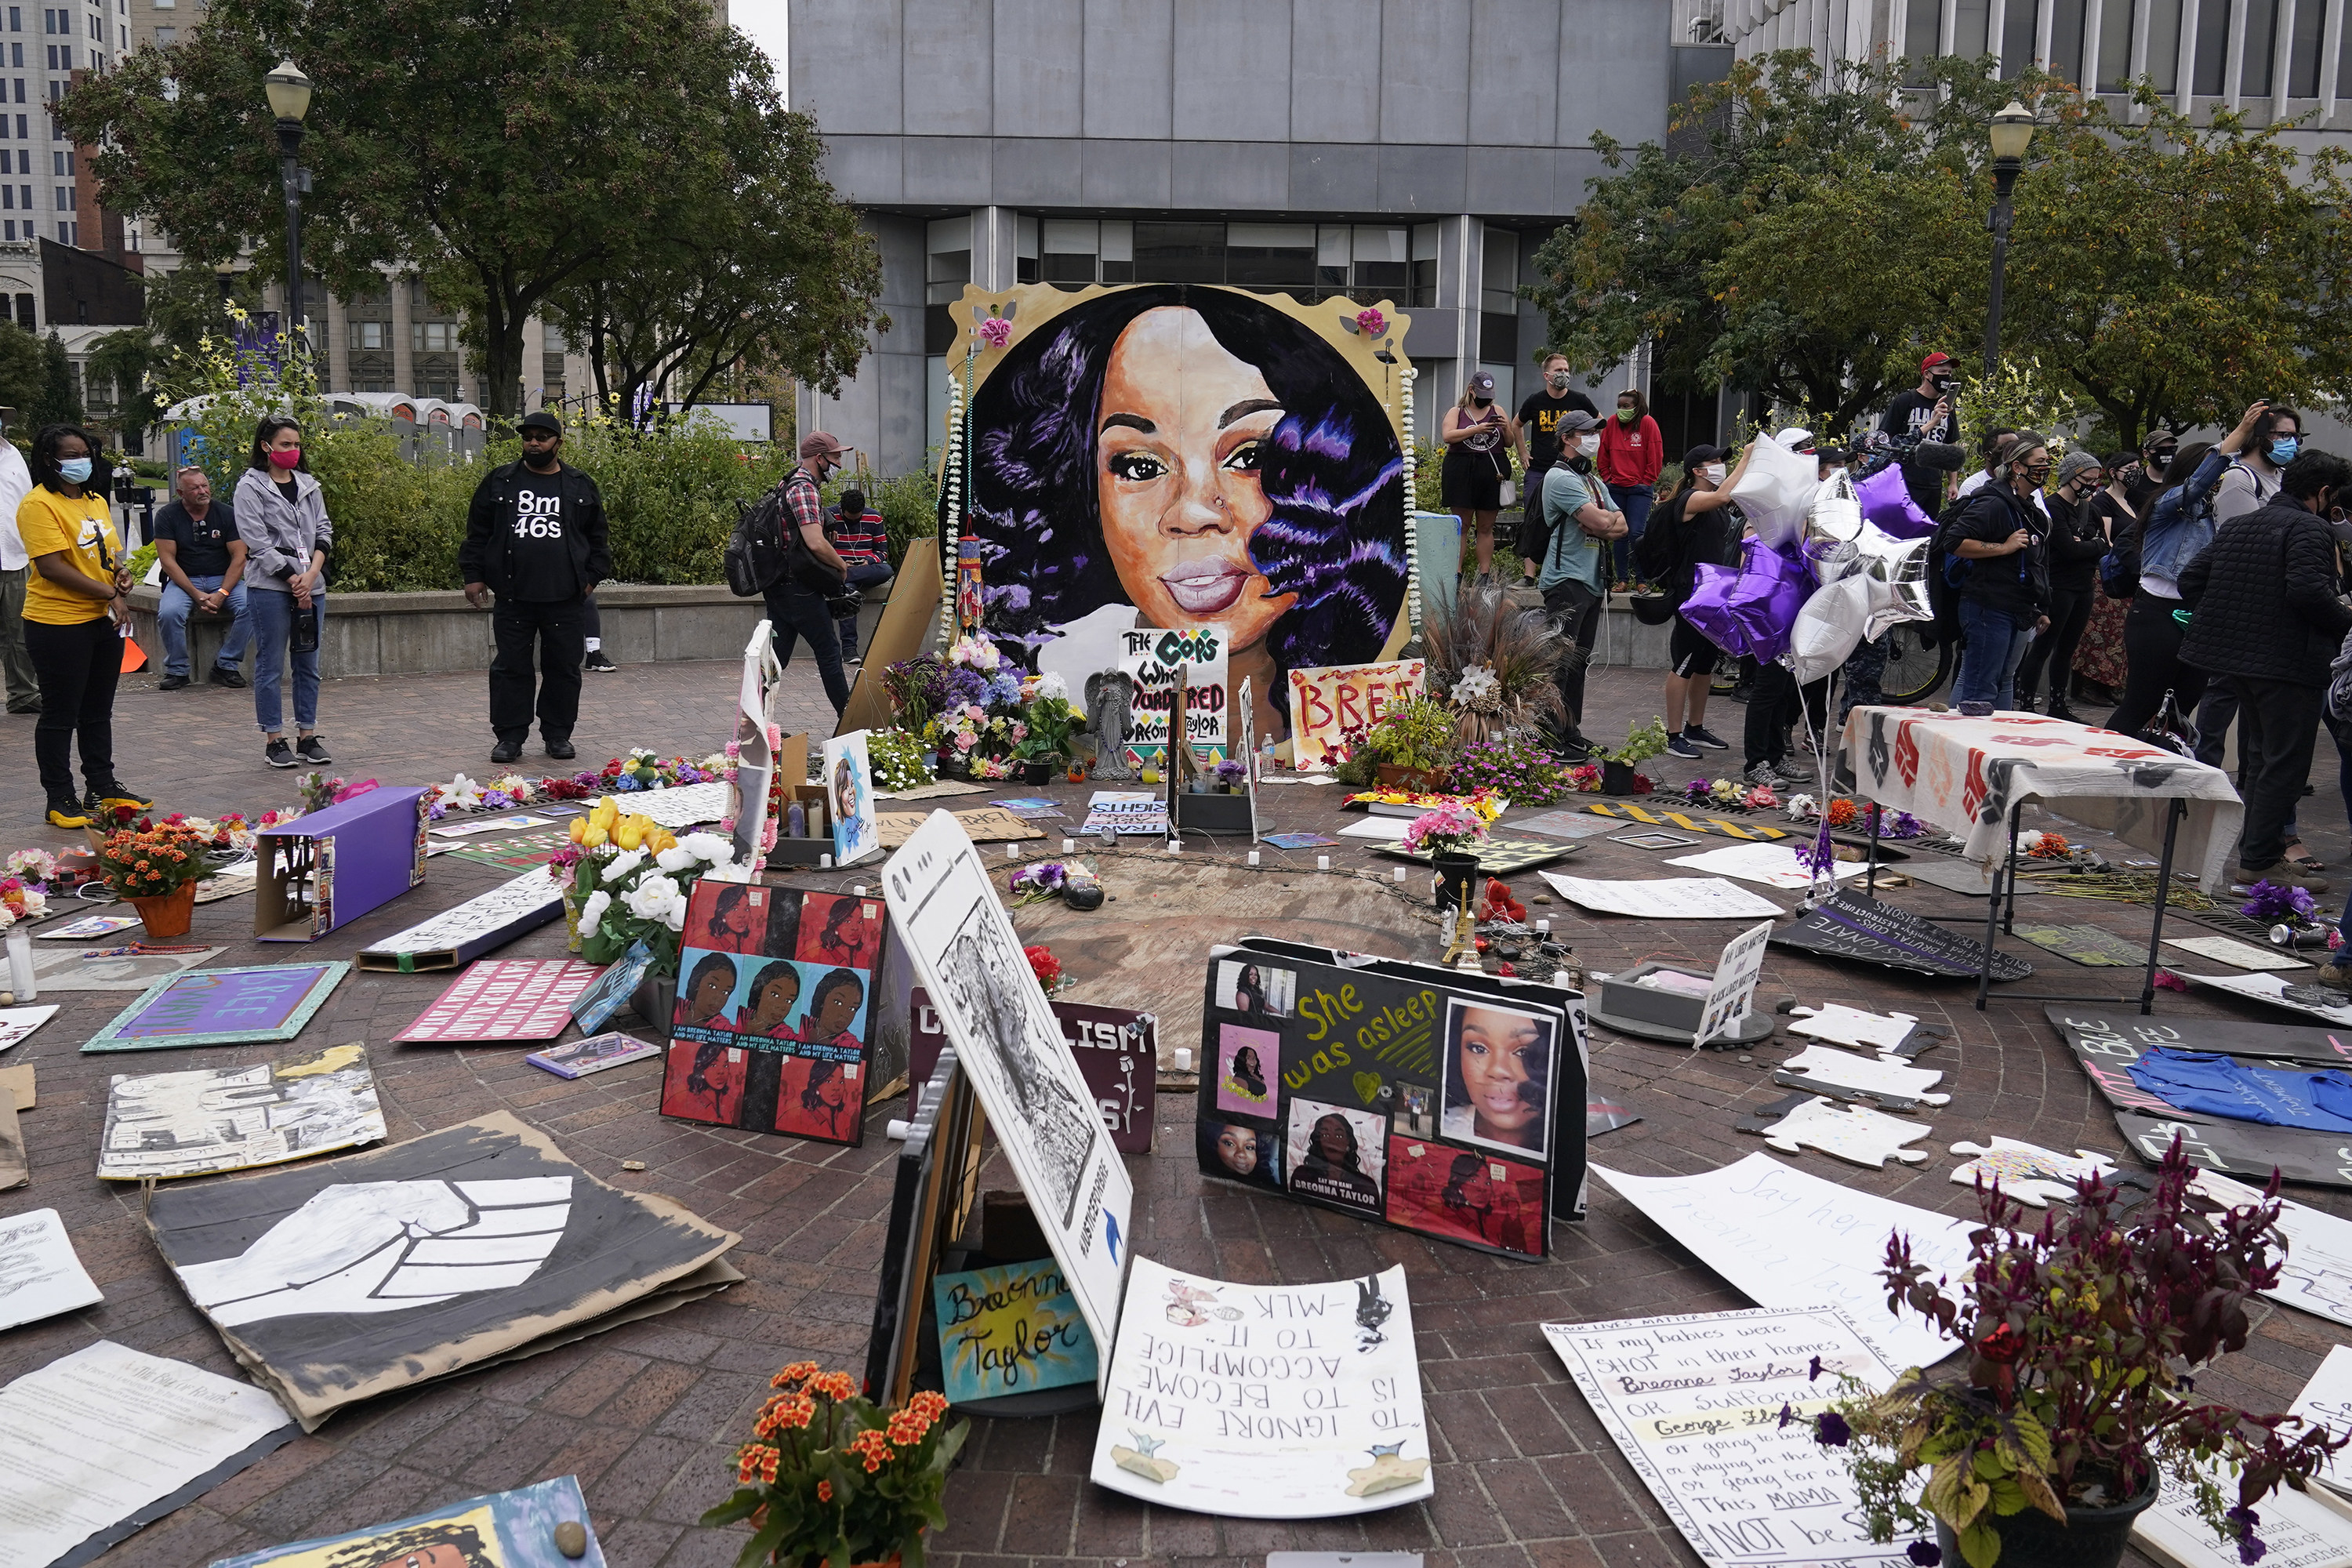 A memorial to Breonna Taylor showing cards and solidarity